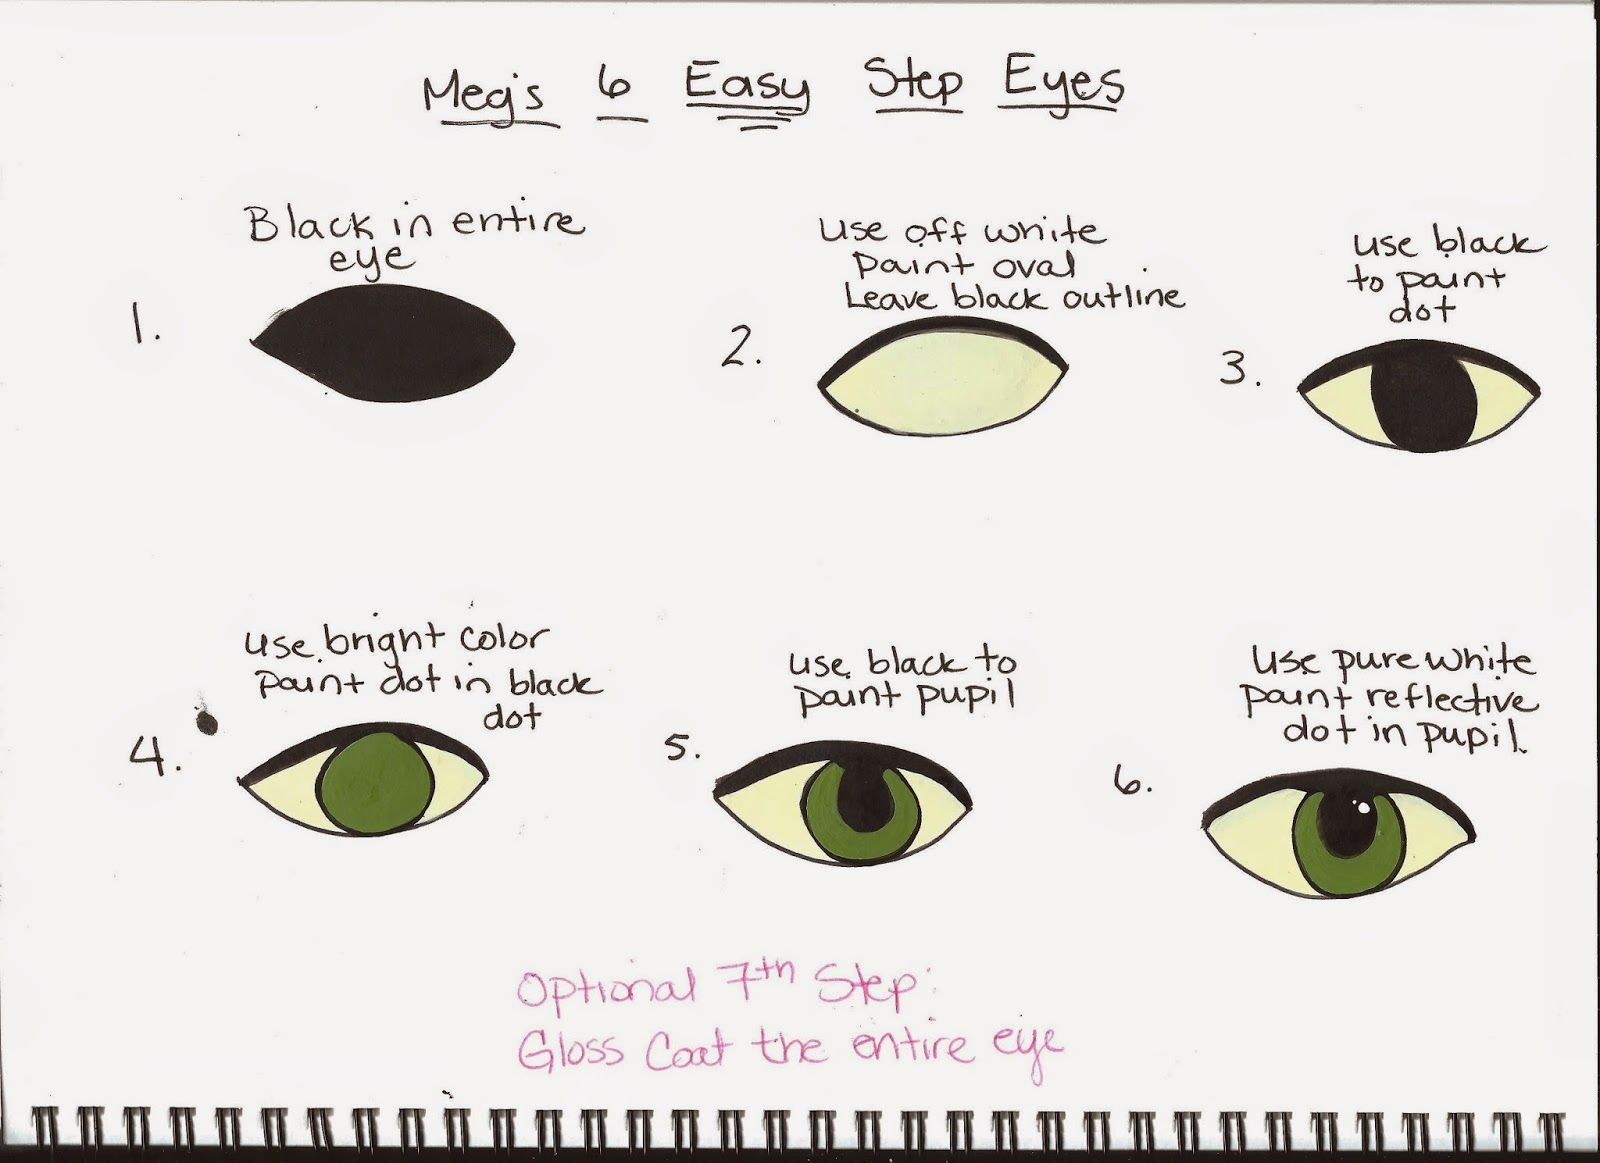 Arcane paintworks six easy steps for eyes eye painting